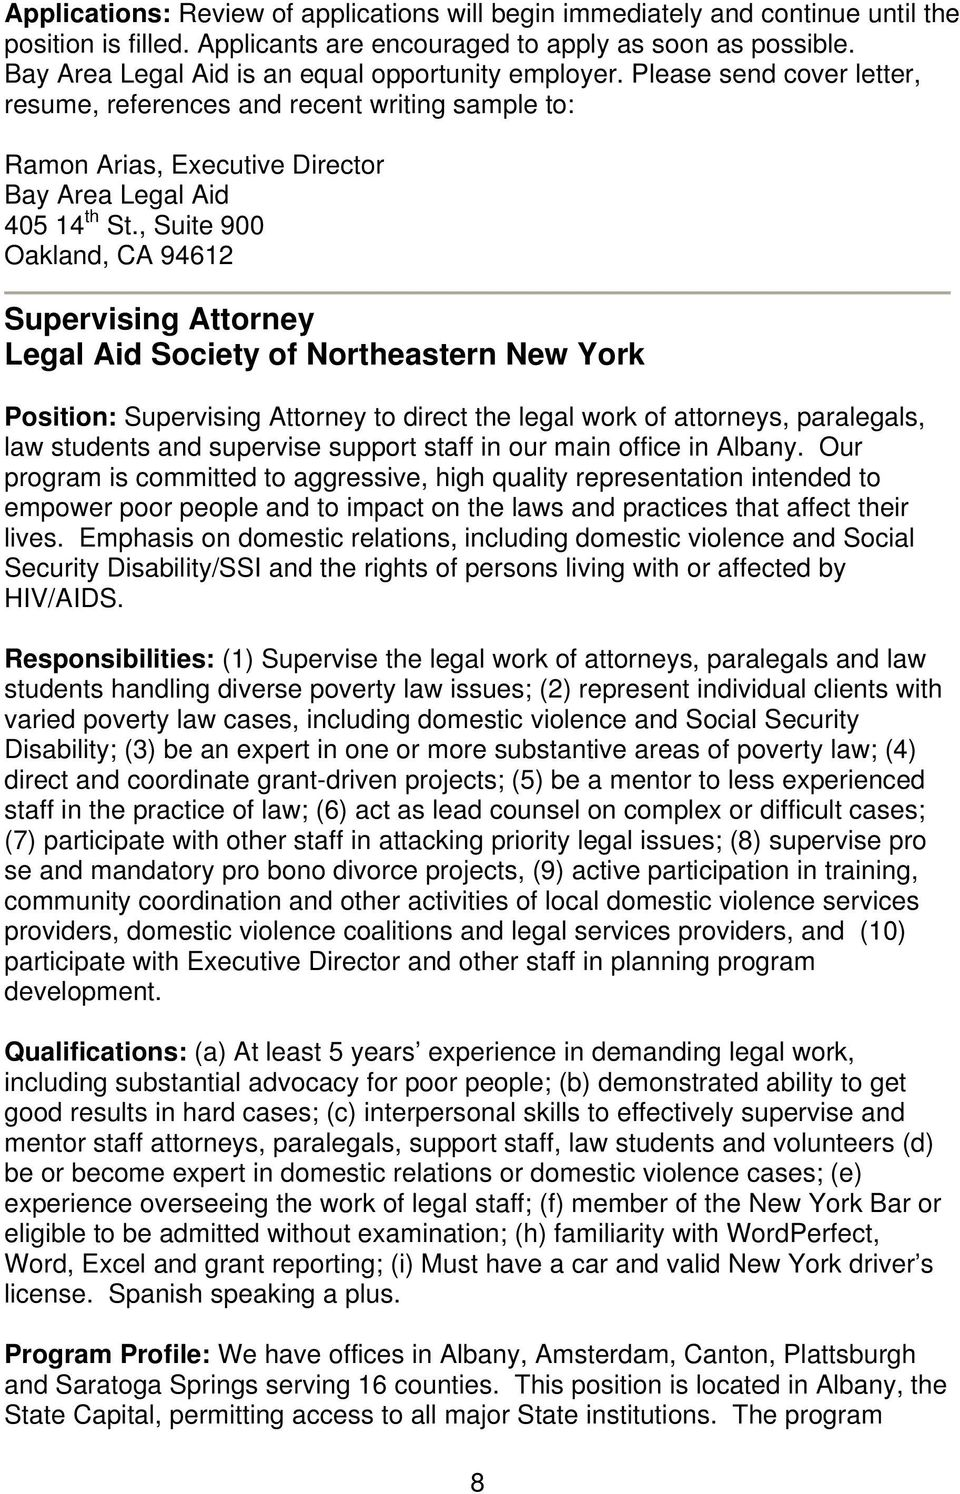 , Suite 900 Oakland, CA 94612 Supervising Attorney Legal Aid Society of Northeastern New York Position: Supervising Attorney to direct the legal work of attorneys, paralegals, law students and